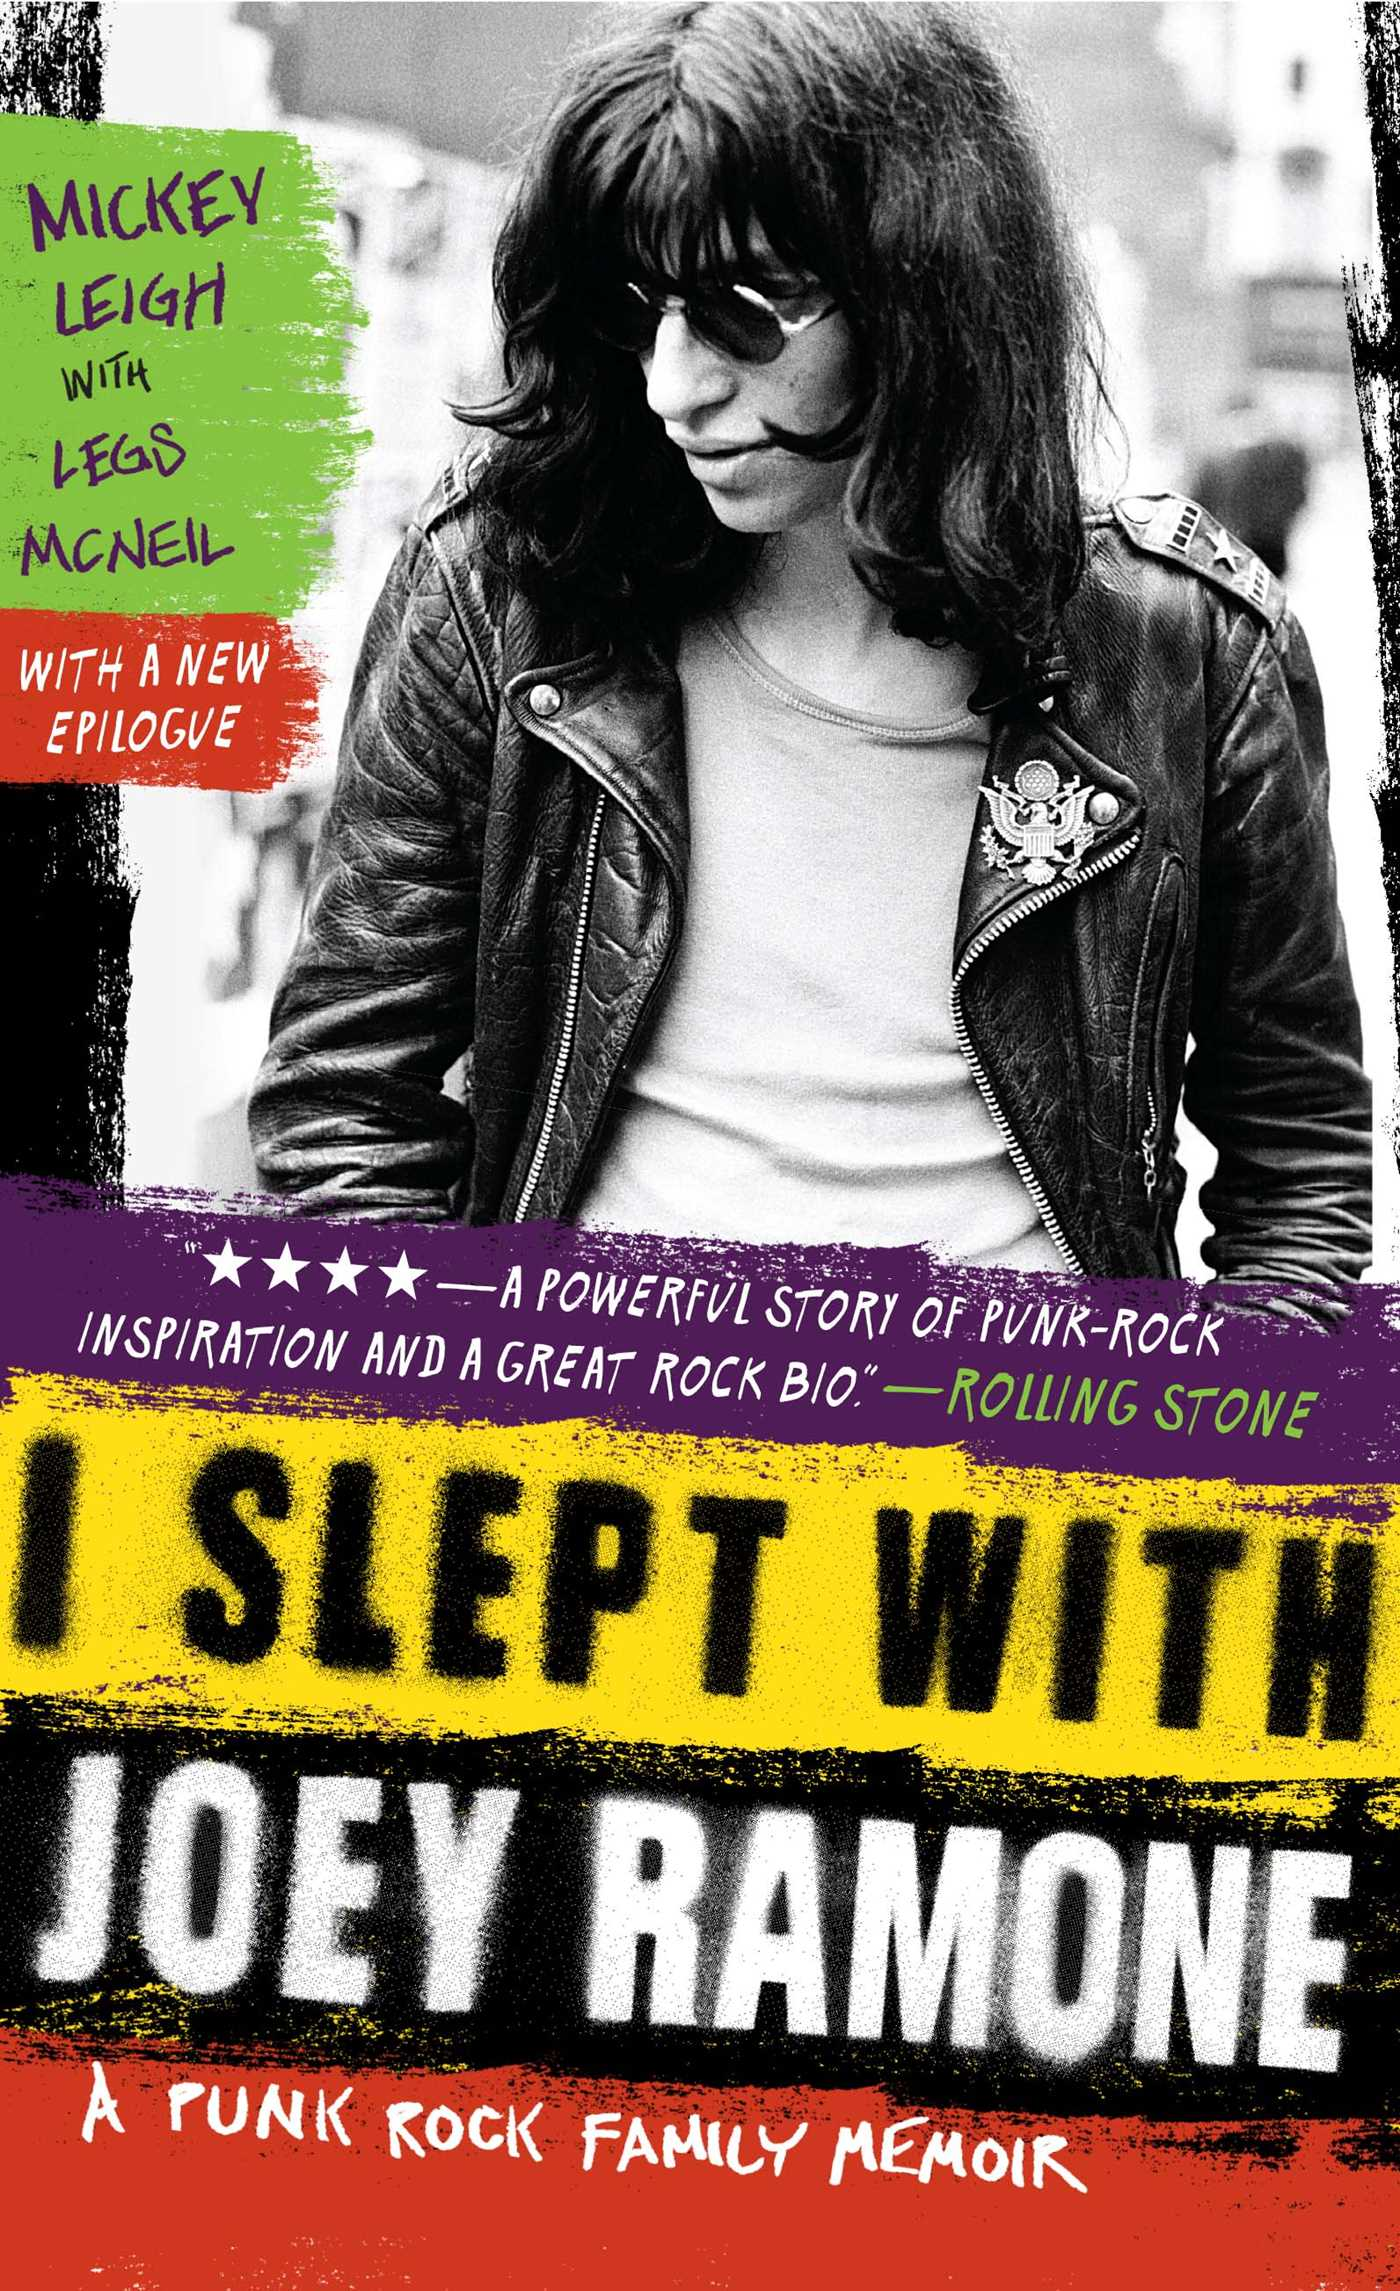 I-slept-with-joey-ramone-9781451639865_hr